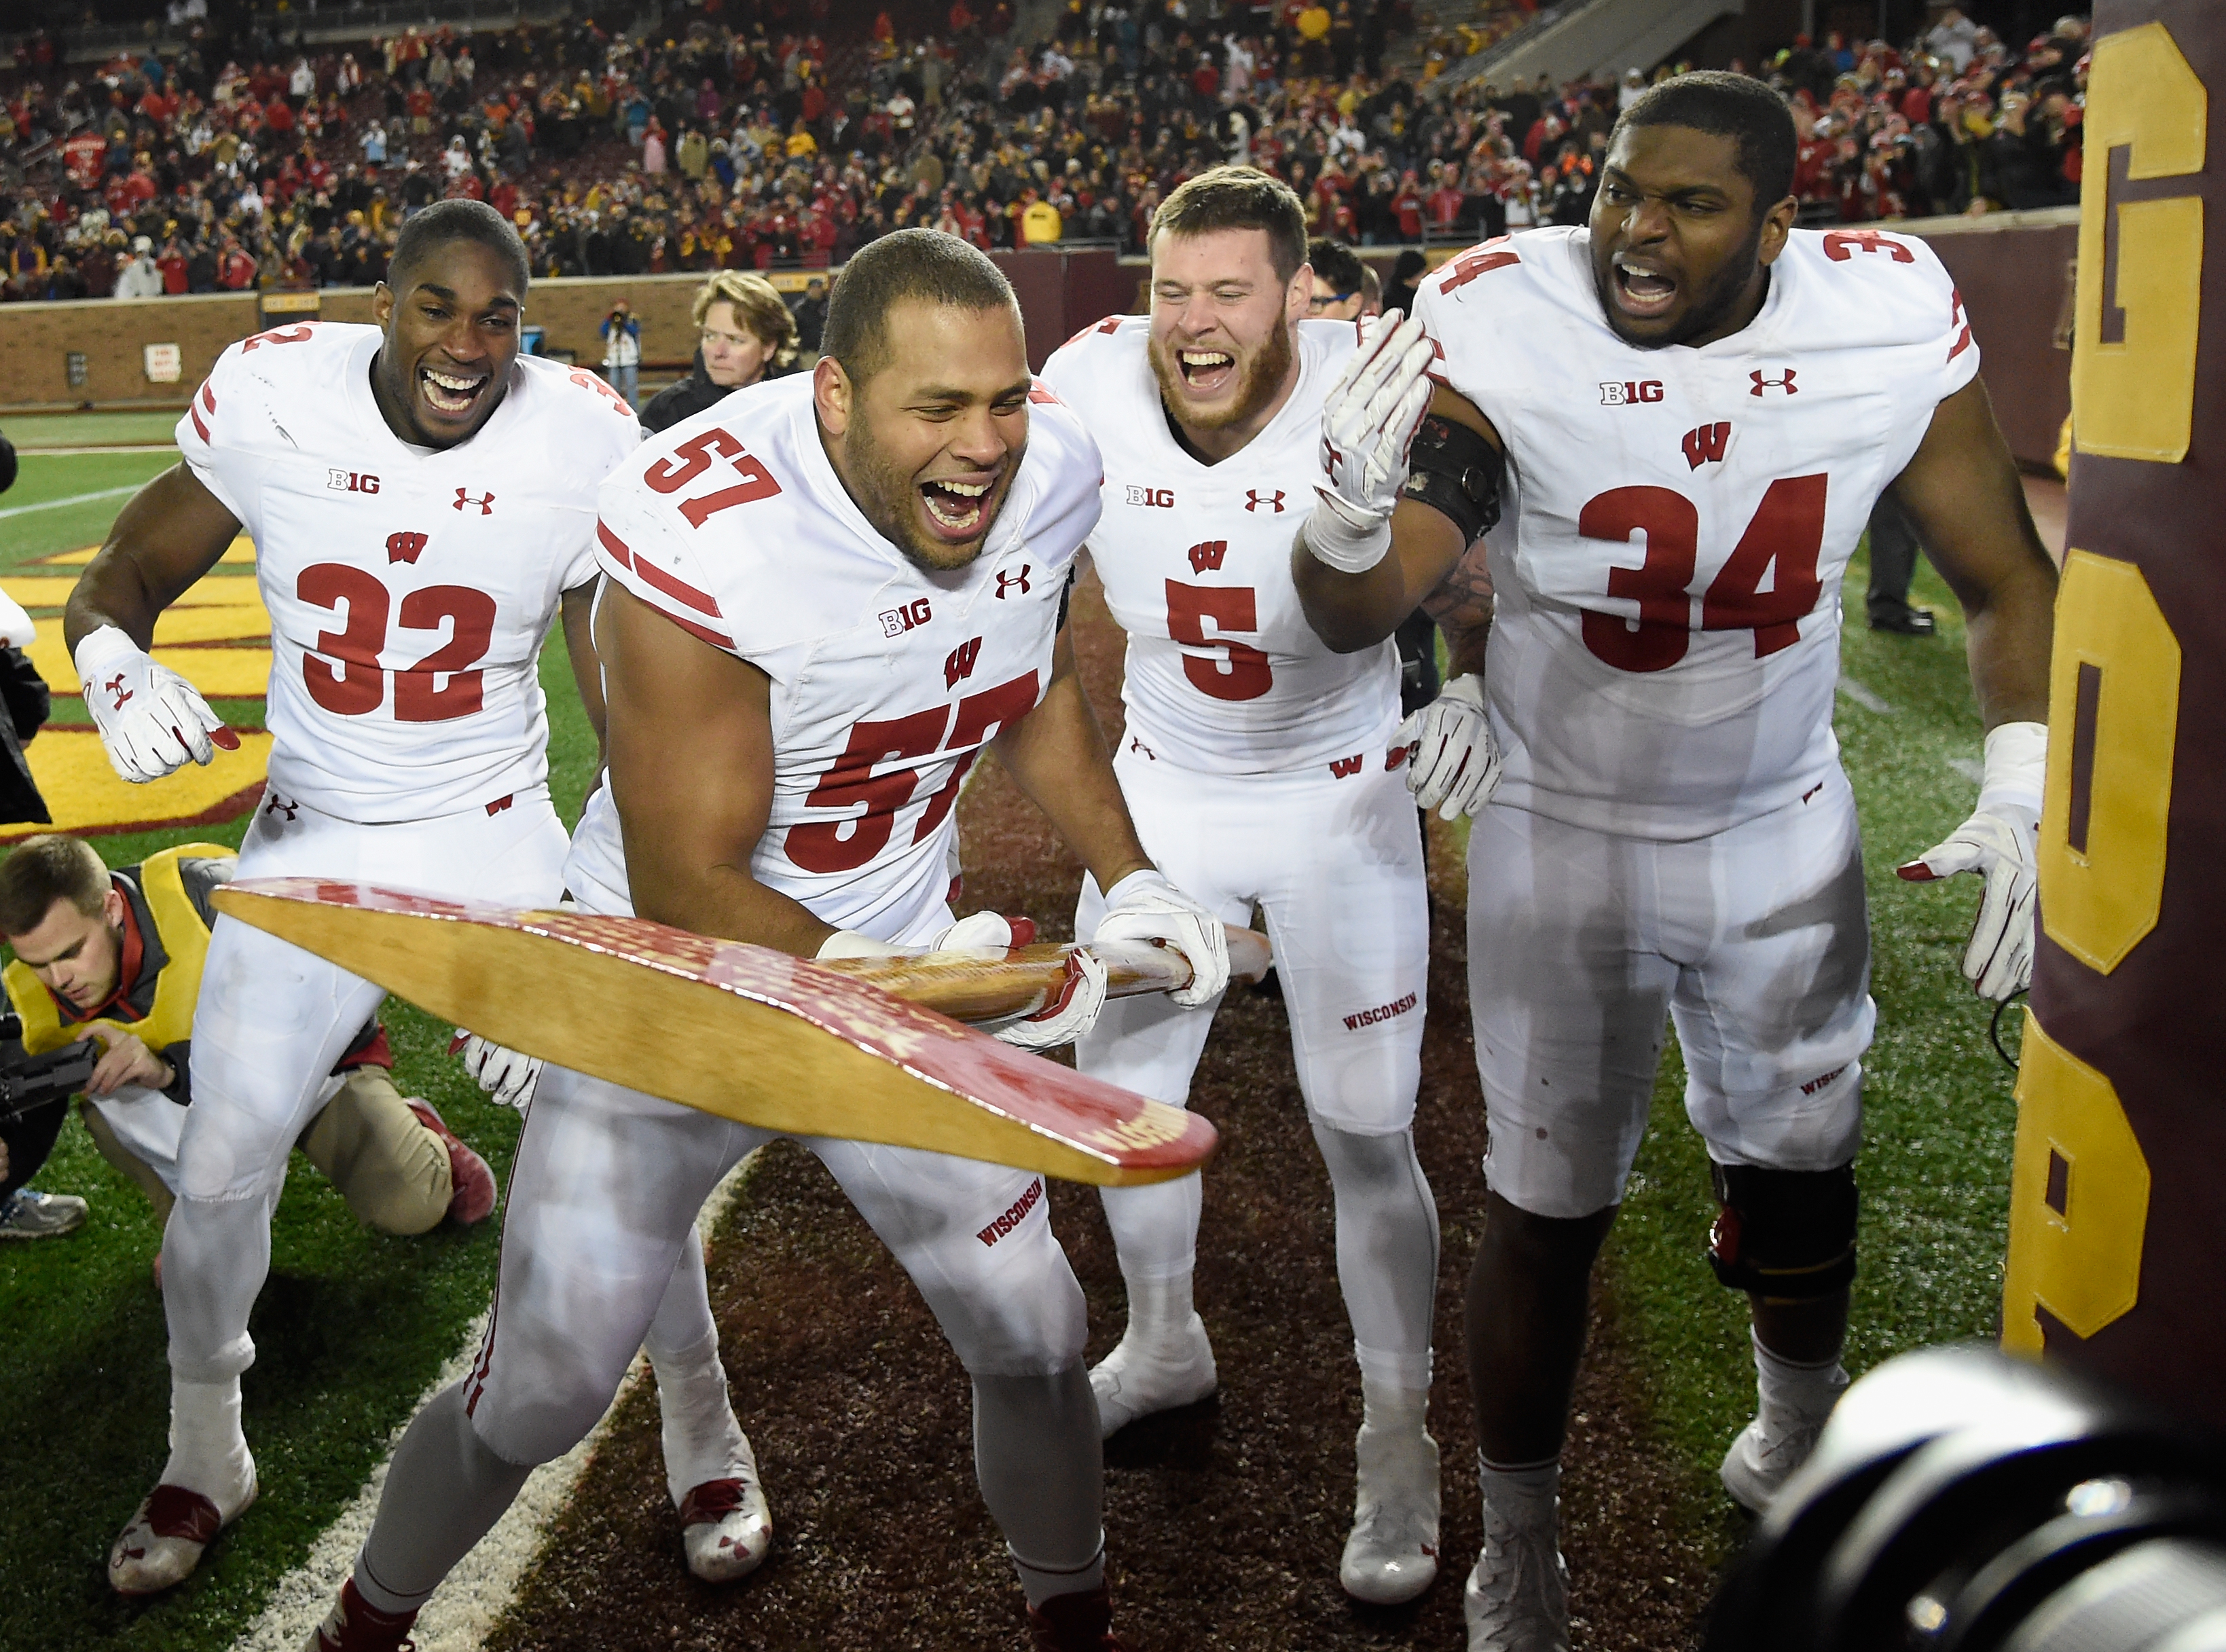 MINNEAPOLIS, MN - NOVEMBER 25: Leon Jacobs #32, Garret Dooley #5, Chikwe Obasih #34 of the Wisconsin Badgers cheer on teammate Alec James #57 as he pretends to chop down the goal post with Paul Bunyan's Axe after defeating the Minnesota Golden Gophers in the game on November 25, 2017 at TCF Bank Stadium in Minneapolis, Minnesota. The Badgers defeated the Golden Gophers 31-0. (Photo by Hannah Foslien/Getty Images)